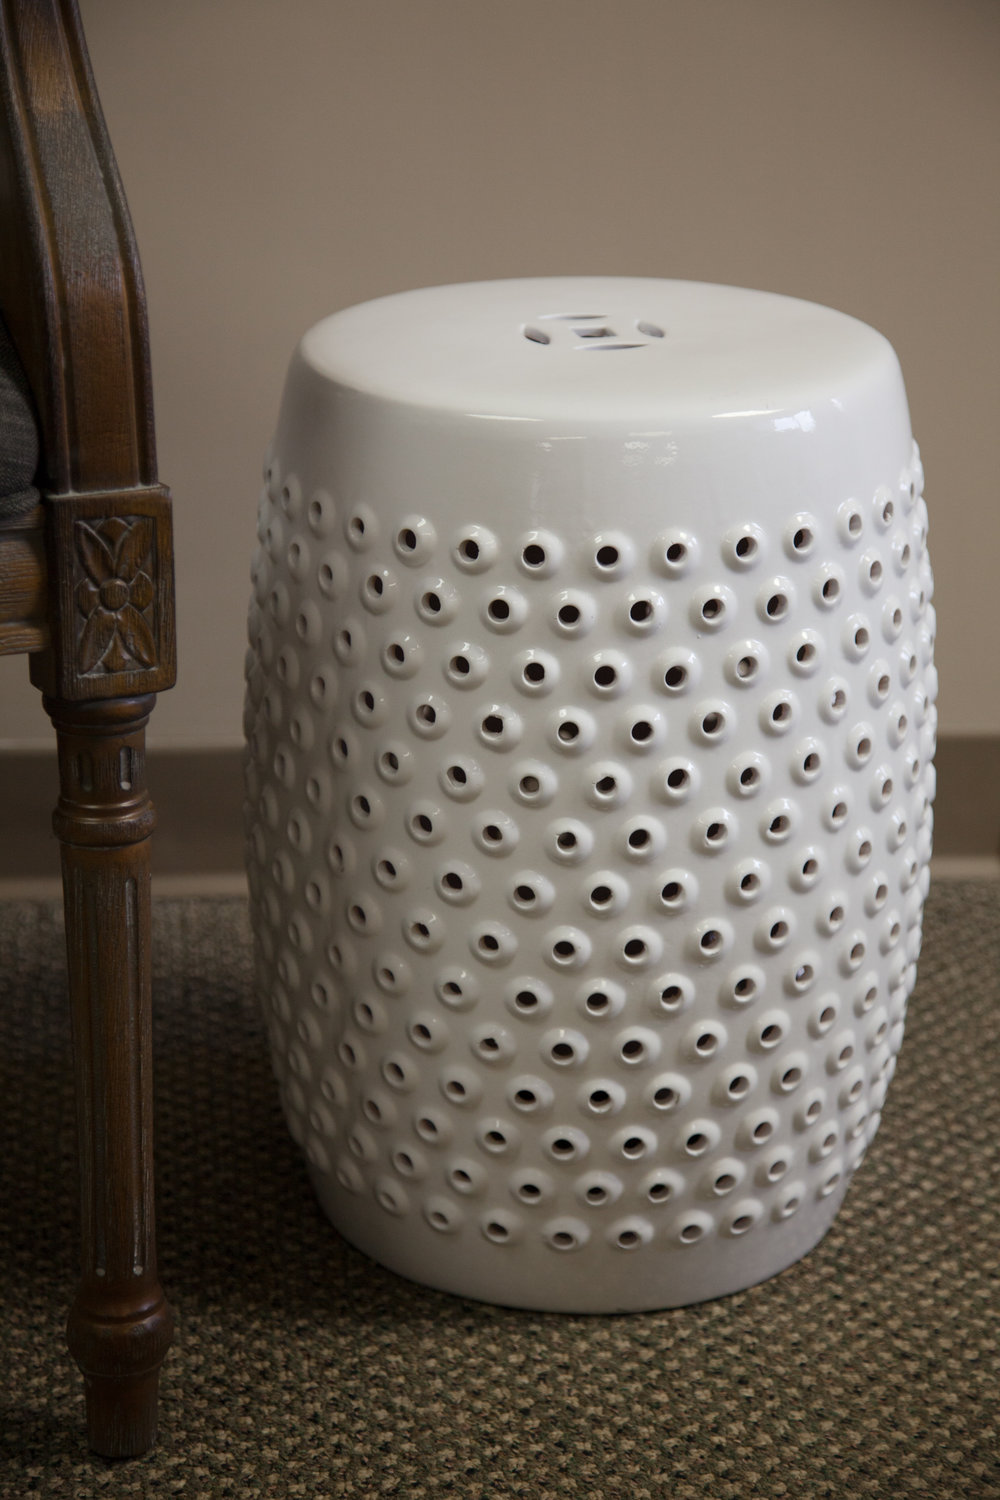 White ceramic garden stool   Donated by: Friends of DMH Foundatio